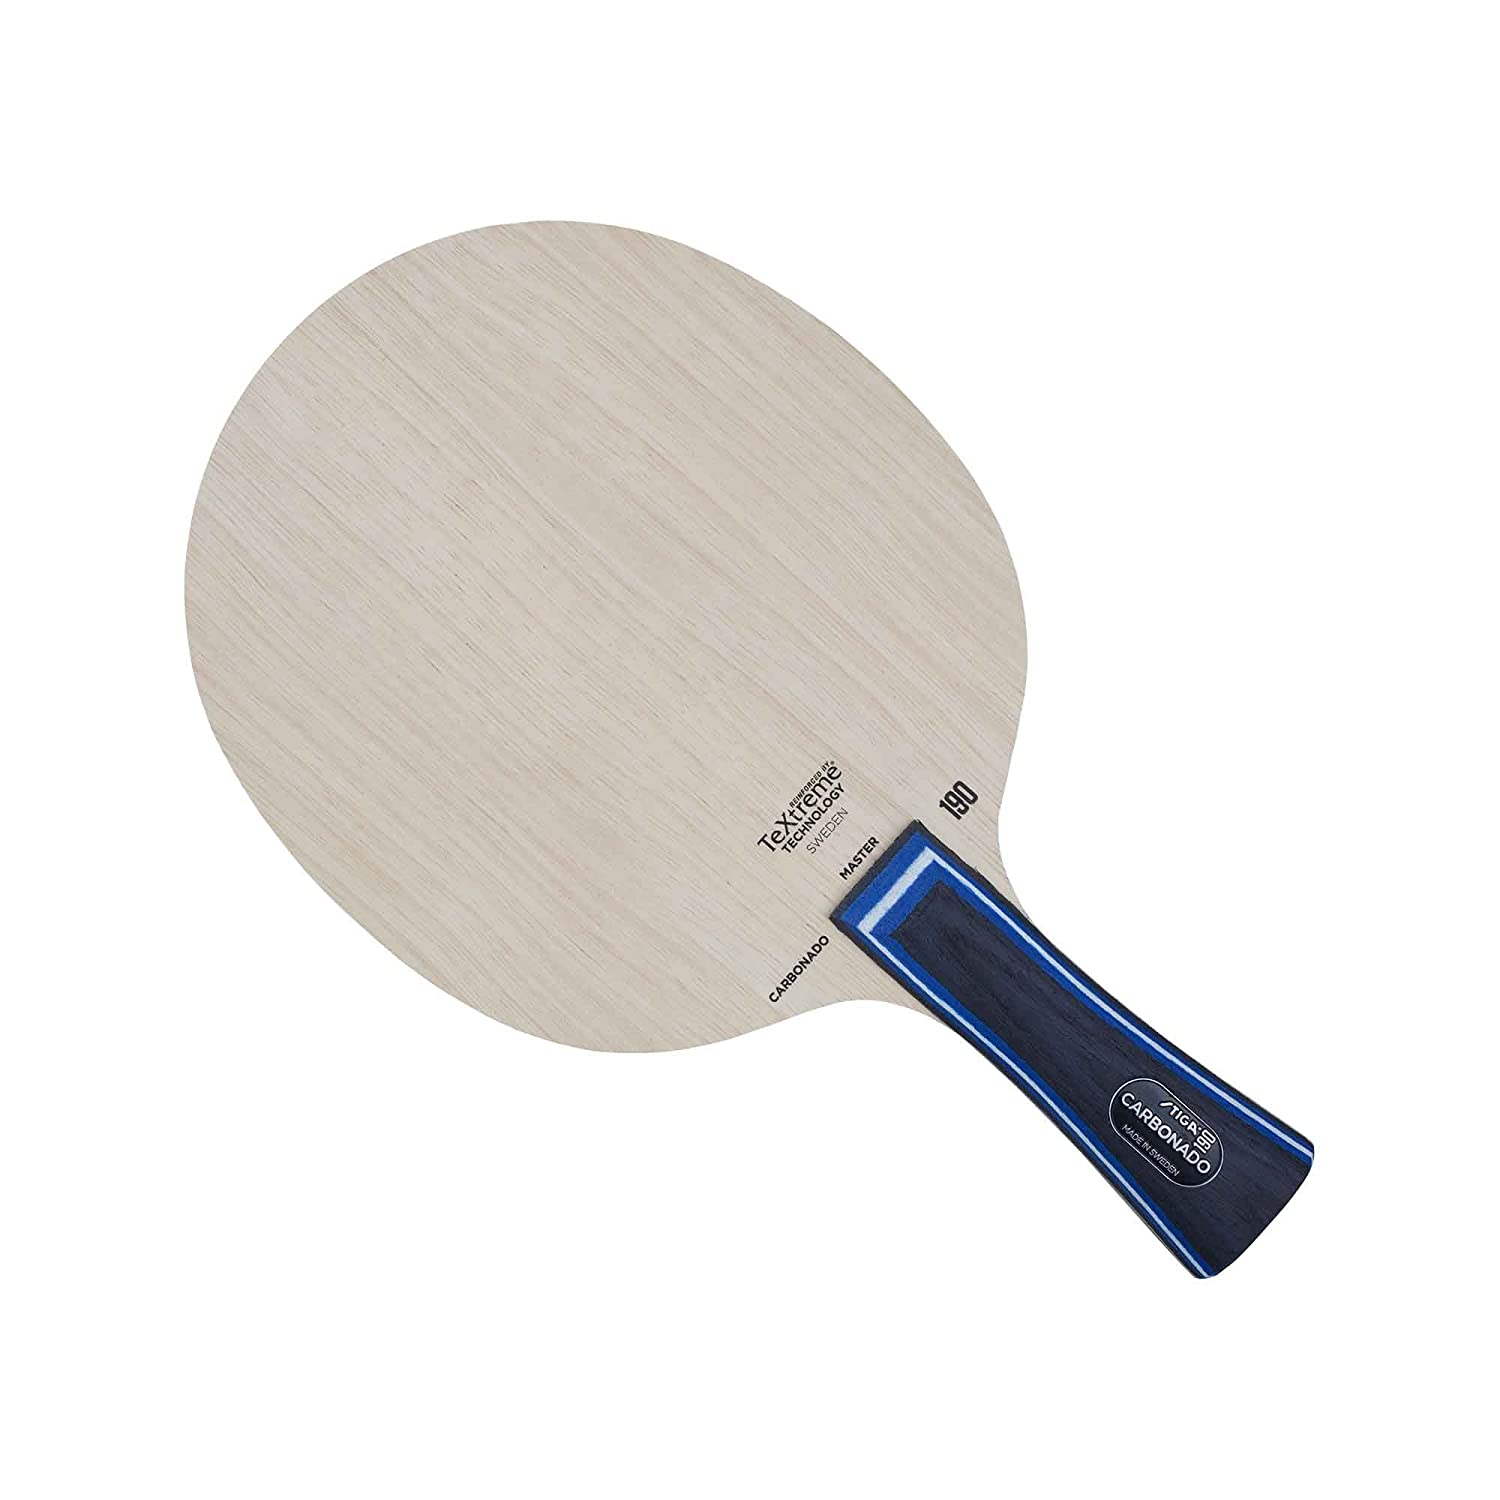 Stiga Unisex's 190 (Classic Grip) Carbonado Constructed with Carbon Layers in 90 Degrees Angle, Tree, One Size 106037